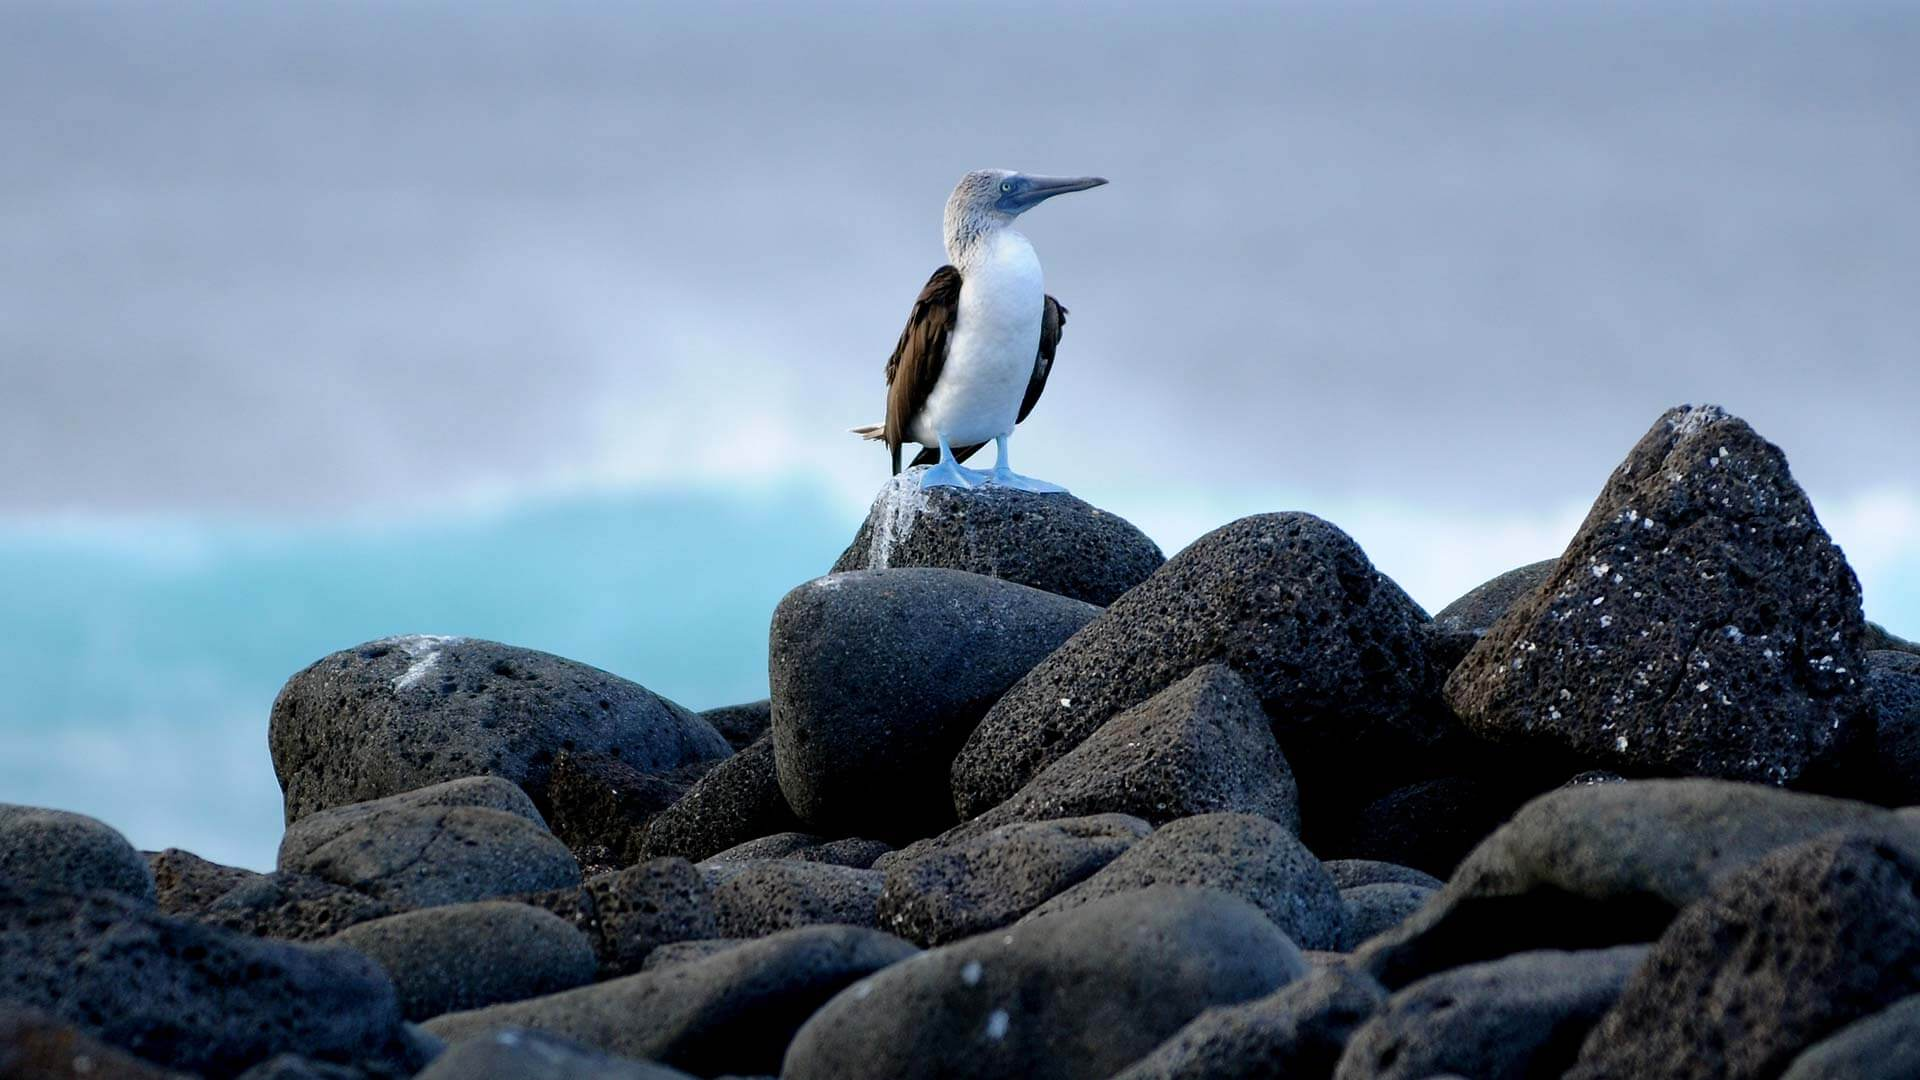 lone galapagos blue footed booby sits on a black lava rock